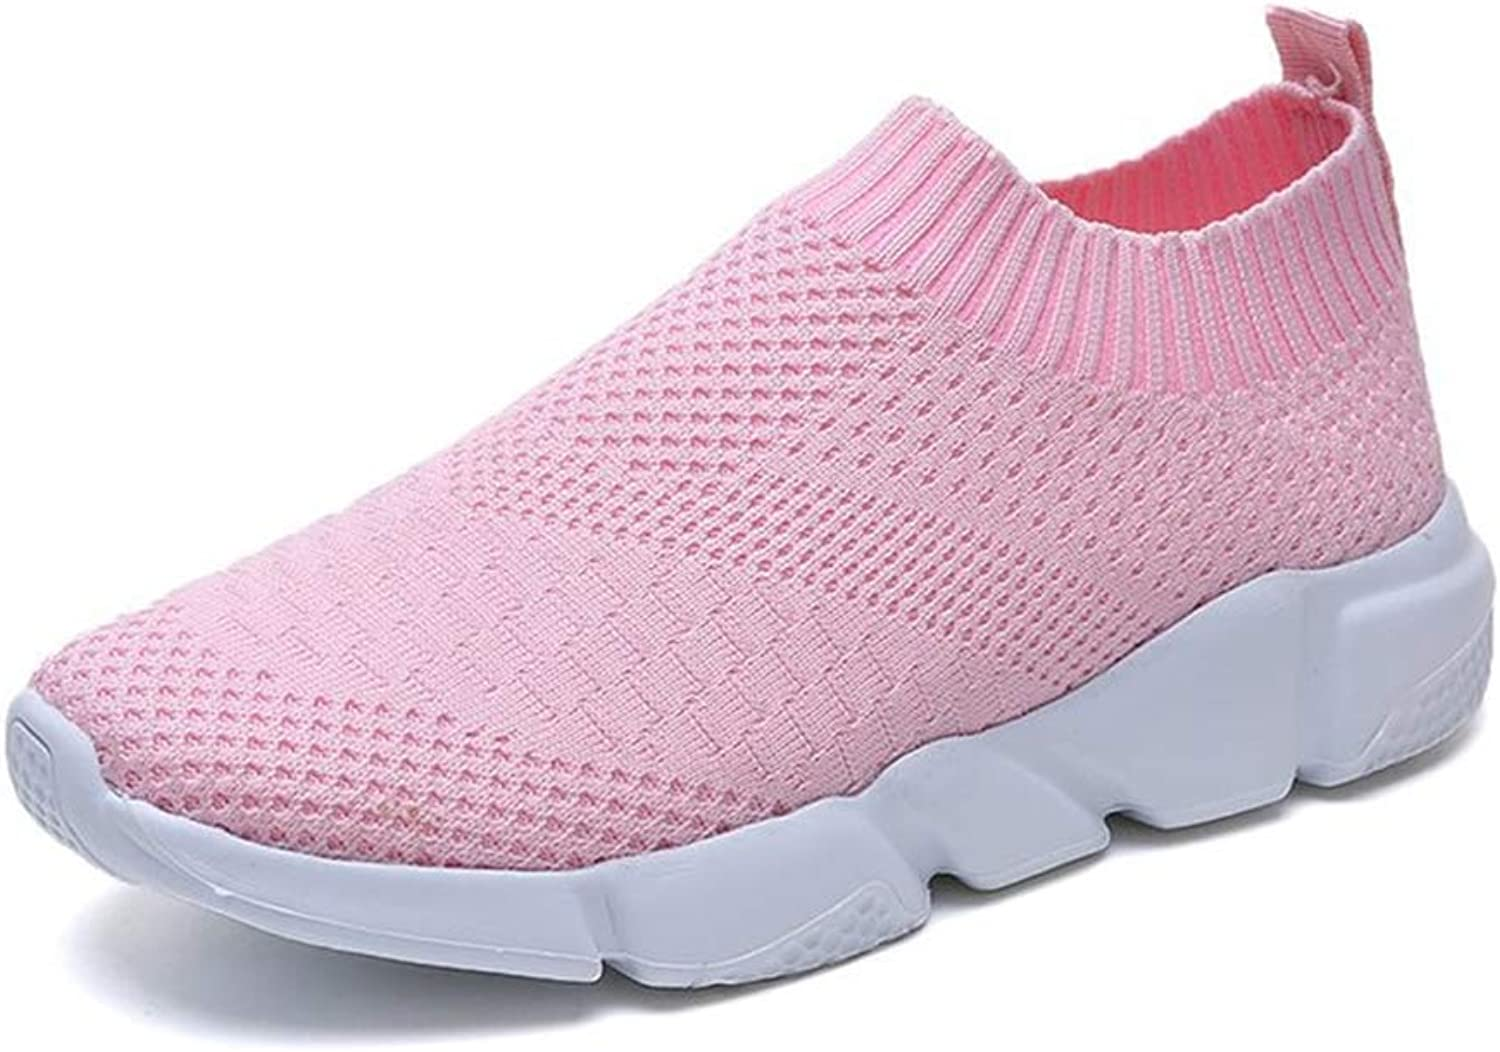 Women's Athletic Lightweight Casual Mesh Walking shoes Mesh Sneakers Slip On Trainers Running shoes Comfortable Platform Loafers